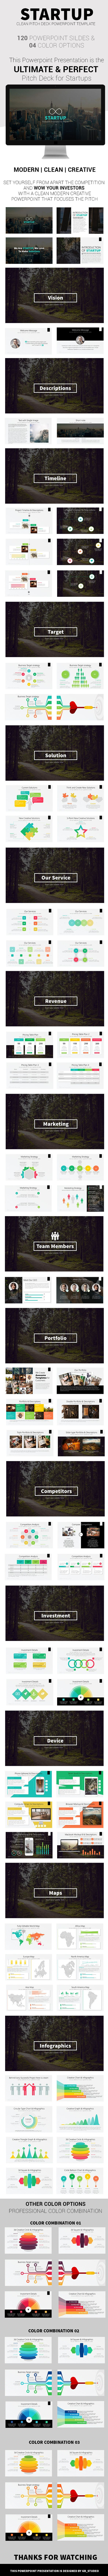 Startup - Clean Pitch Deck Powerpoint Template - Business PowerPoint Templates